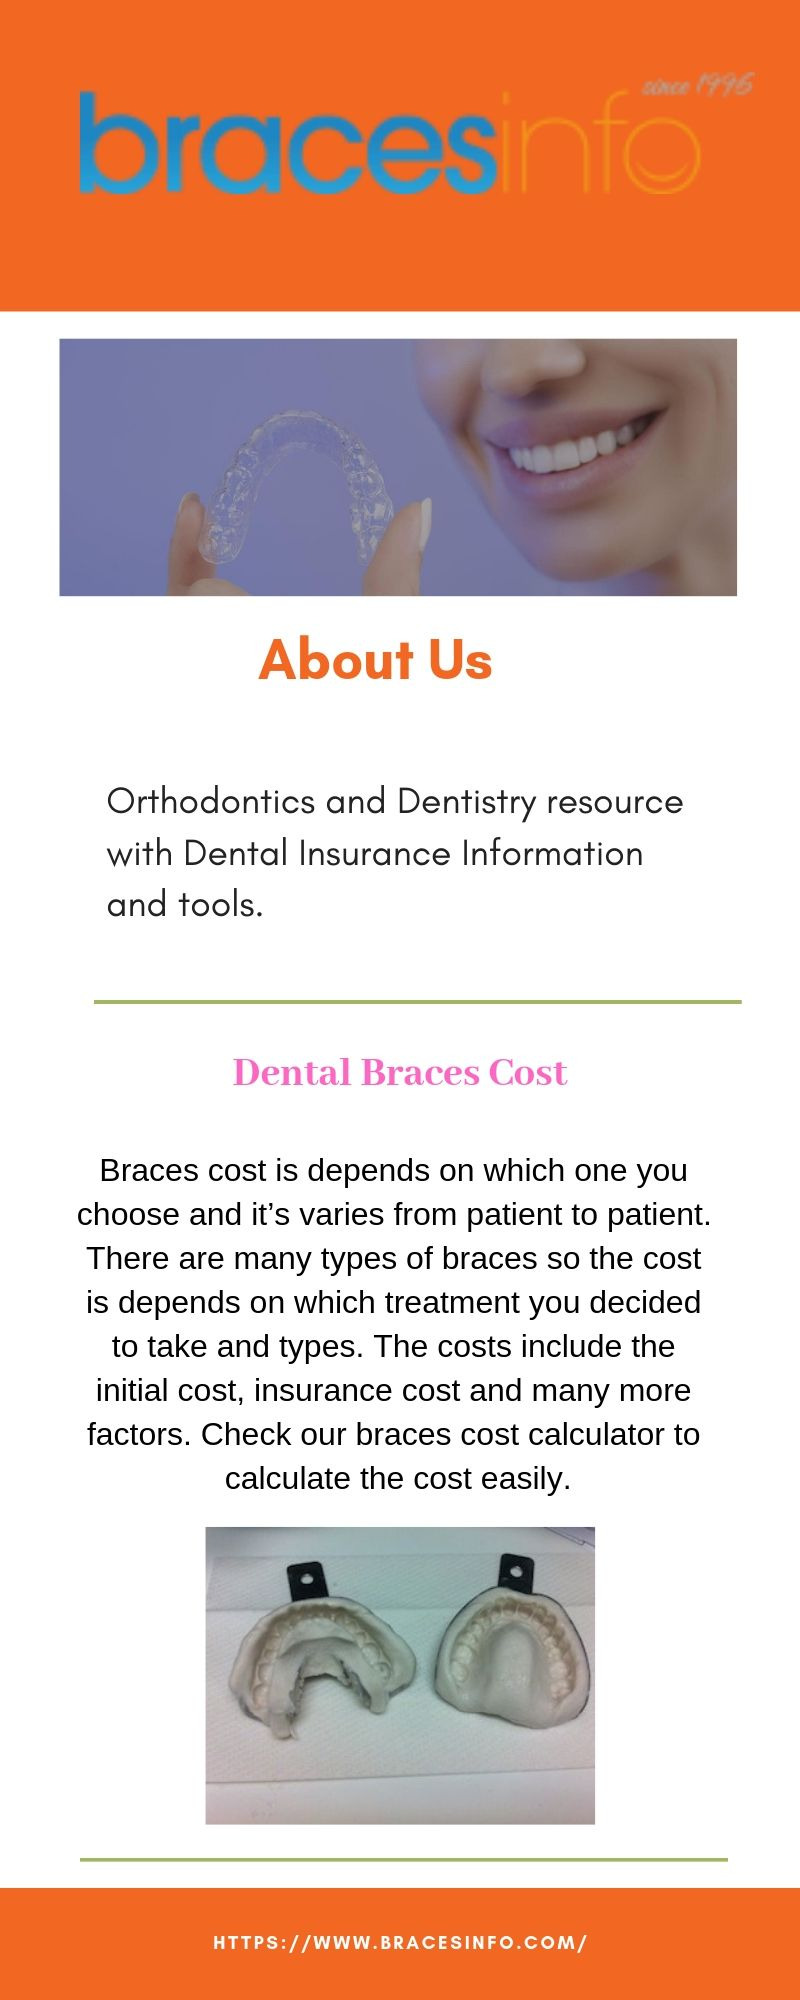 Braces Cost Is Depends On Which One You Choose And It S Varies From Patient To Patient There Are Many Types Of Braces So The Cost Is Dep Braces Cost Dental Braces